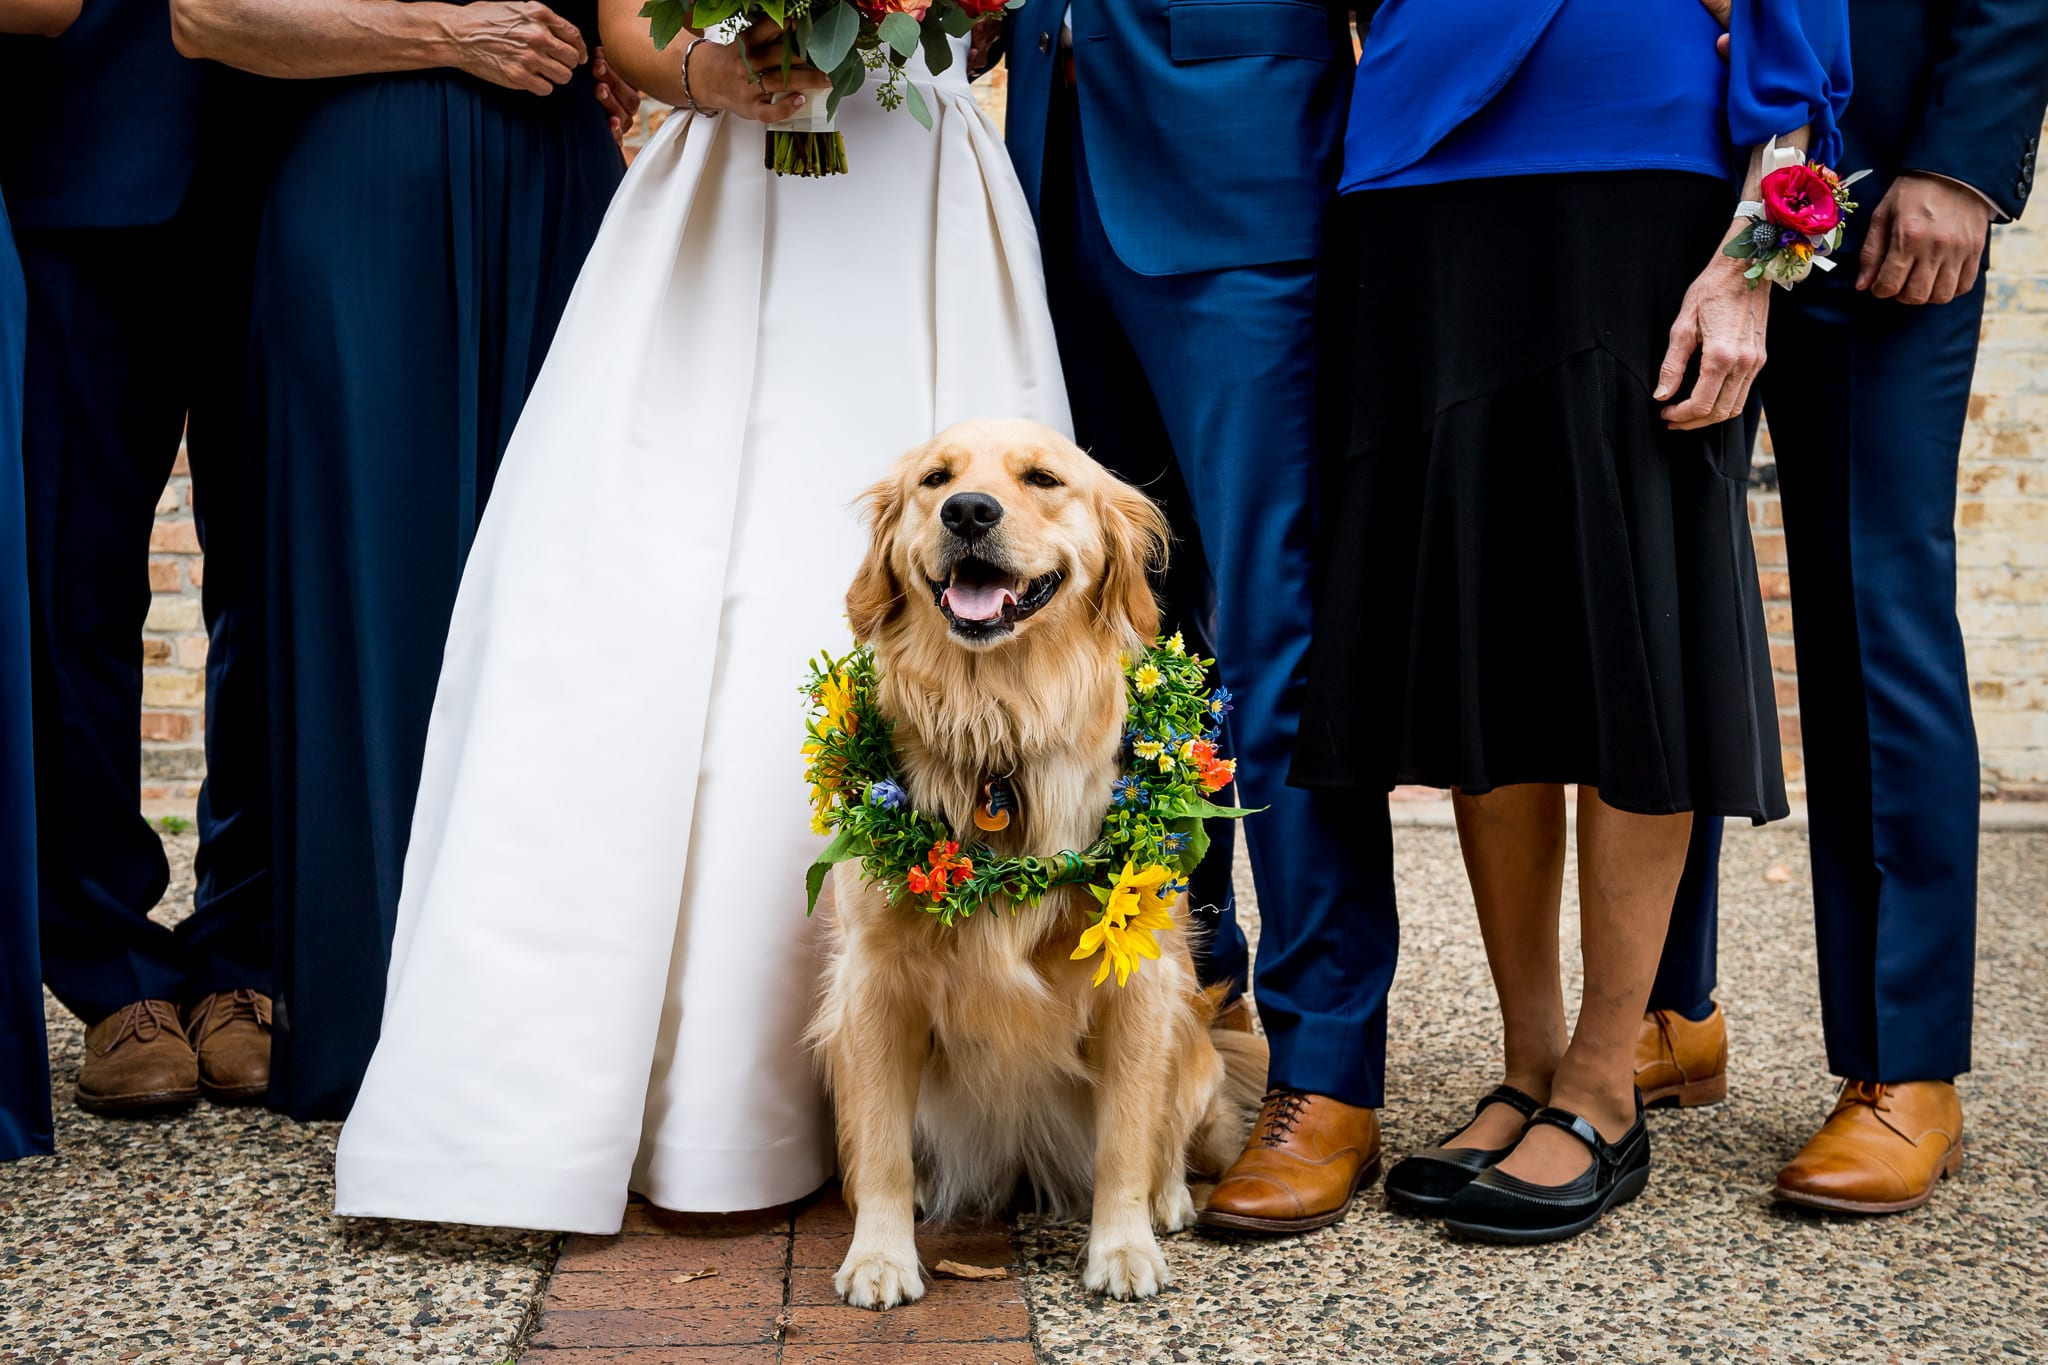 Ring bearer golden retriever poses for a photo while wearing his wedding flowers